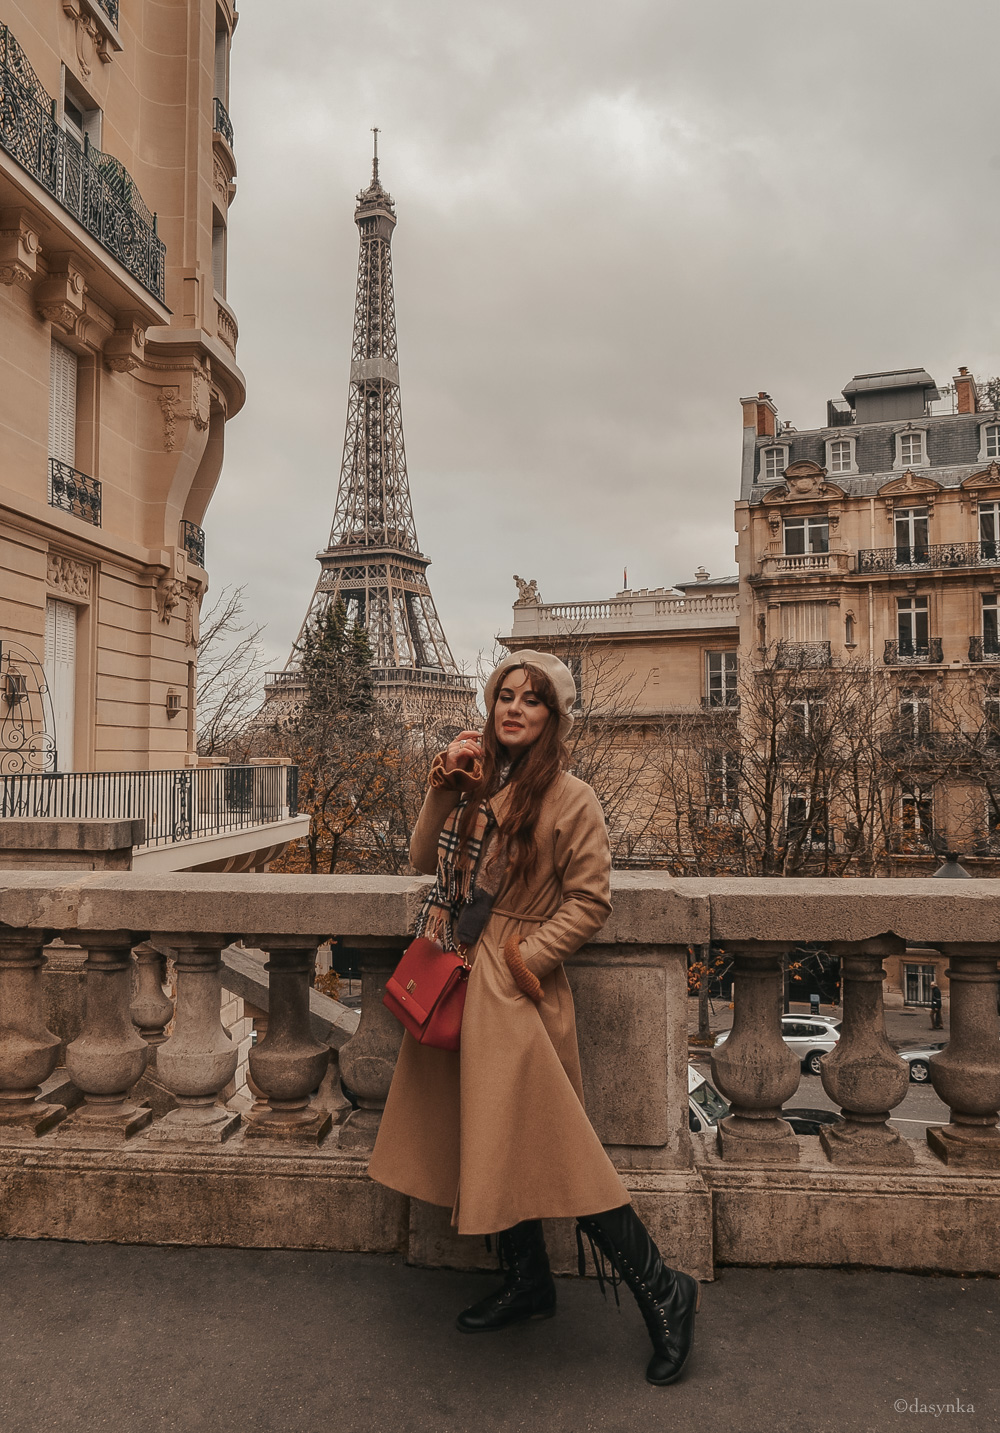 dasynka-fashion-blog-blogger-influencer-inspo-inspiration-shooting-model-globettrotter-travel-girl-lookbook-instagram-instagrammer-long-hair-street-style-casual-italy-lifestyle-outfit-poses-look-ootd-ideas-elegant-italian-paris-coat-camel-burberry-hat-basque-browne-boots-black-shirt-bow-sweater-cozy-parisien-parisienne-parisian-neutral-beige-white-scarf-france-tour-eiffel-avenue-Camoëns